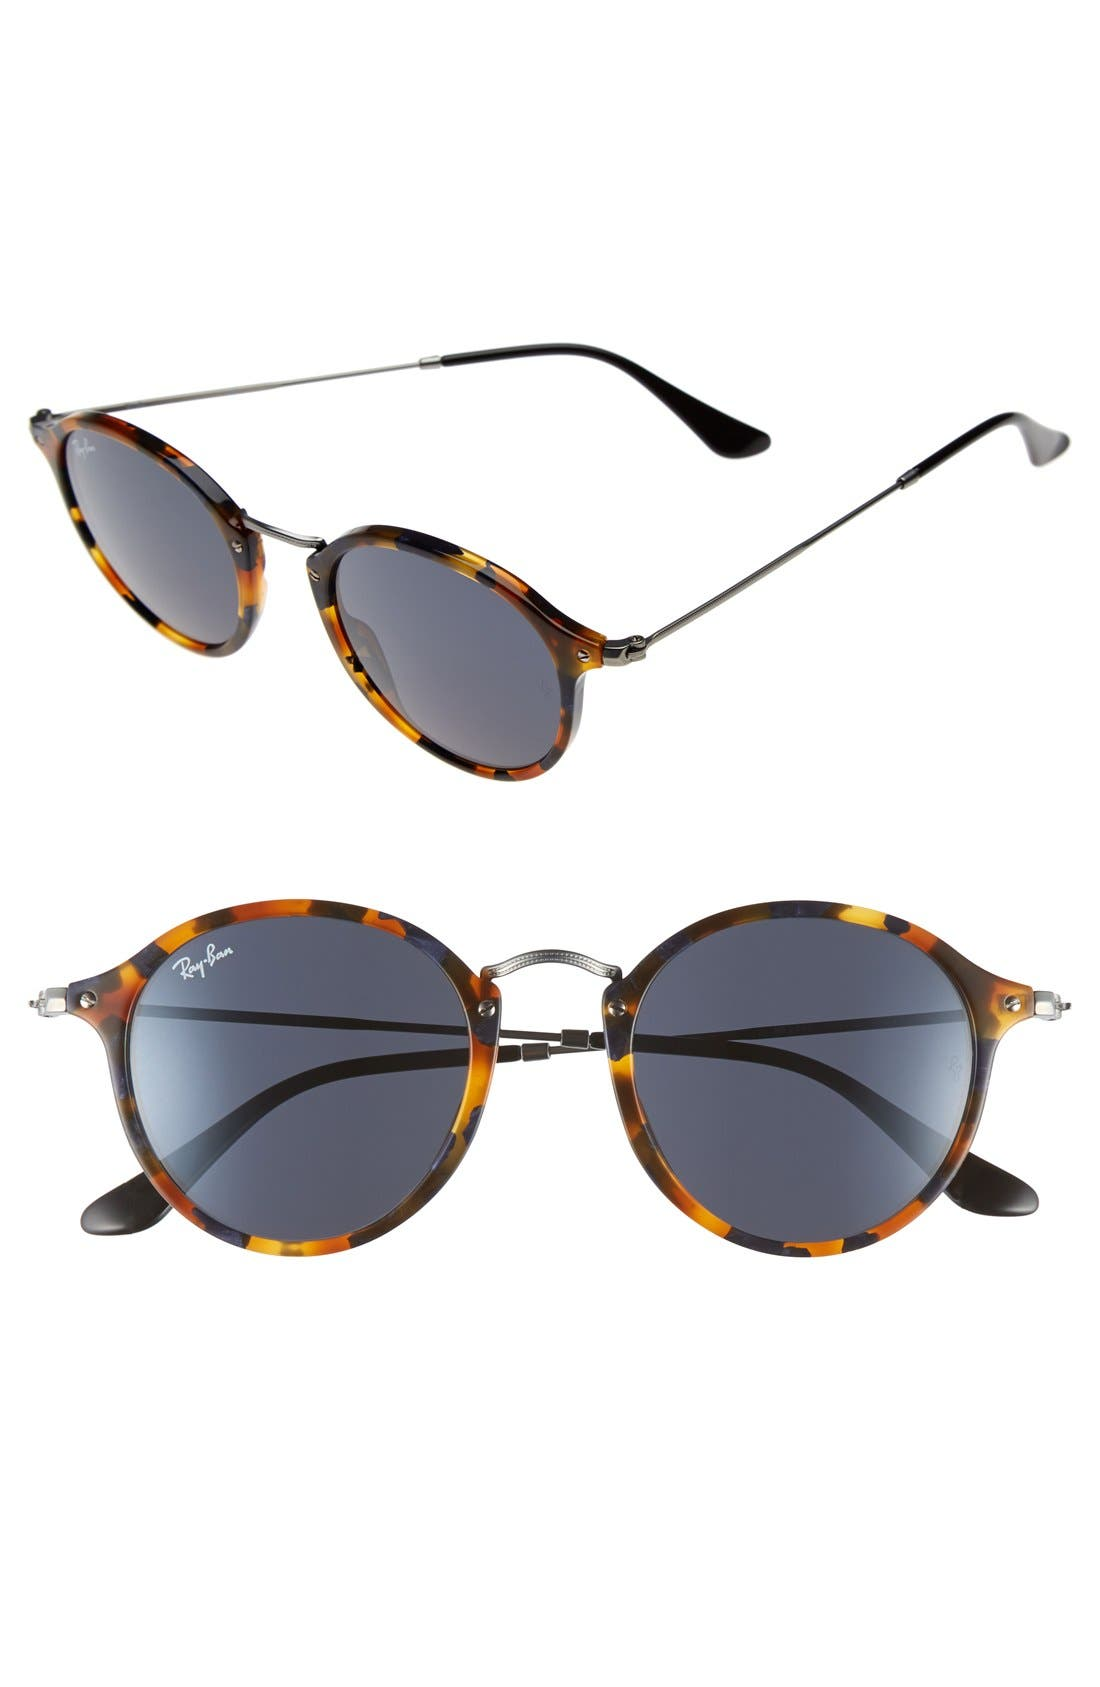 49mm Retro Sunglasses,                         Main,                         color, Spotted Blue Havana/ Grey